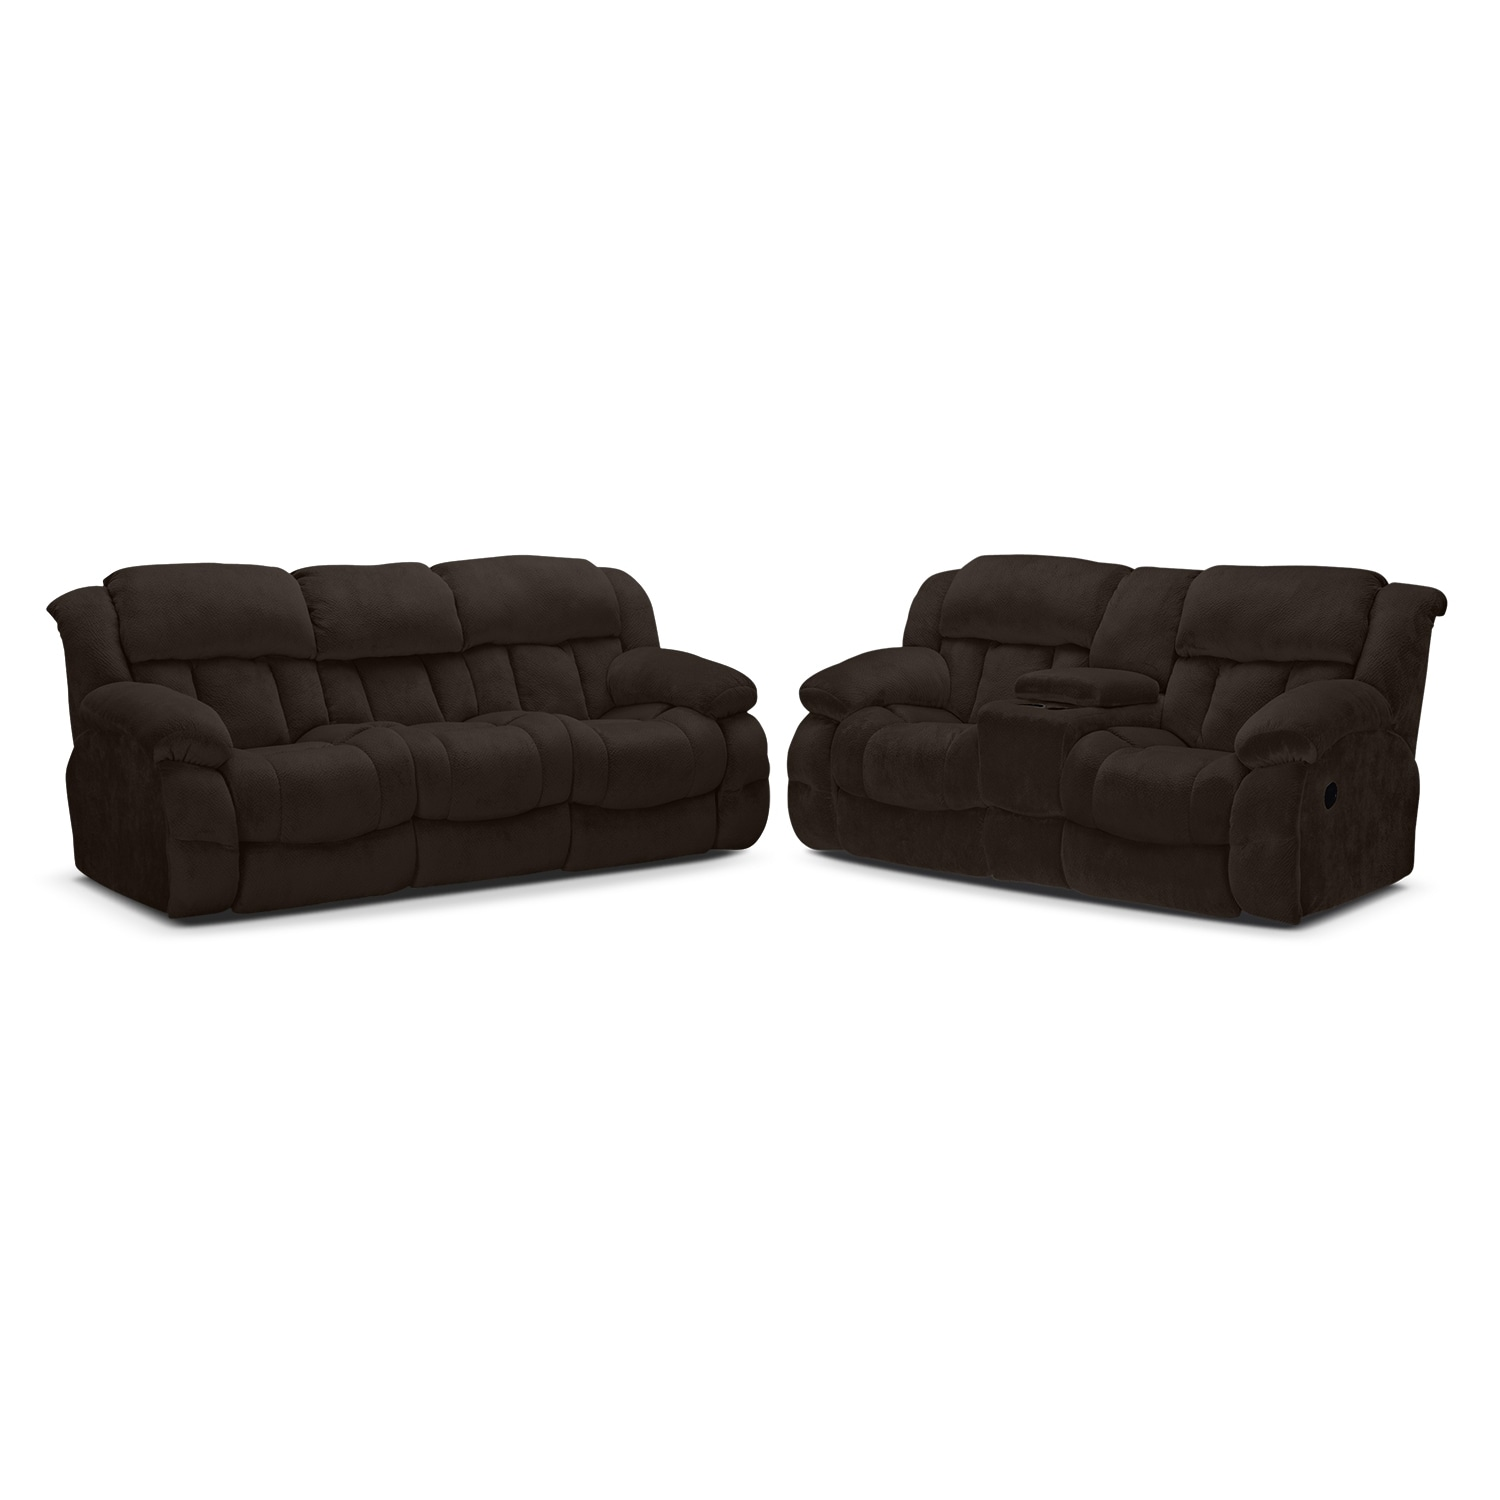 Living Room Furniture - Park City Dual Reclining Sofa and Loveseat Set - Chocolate